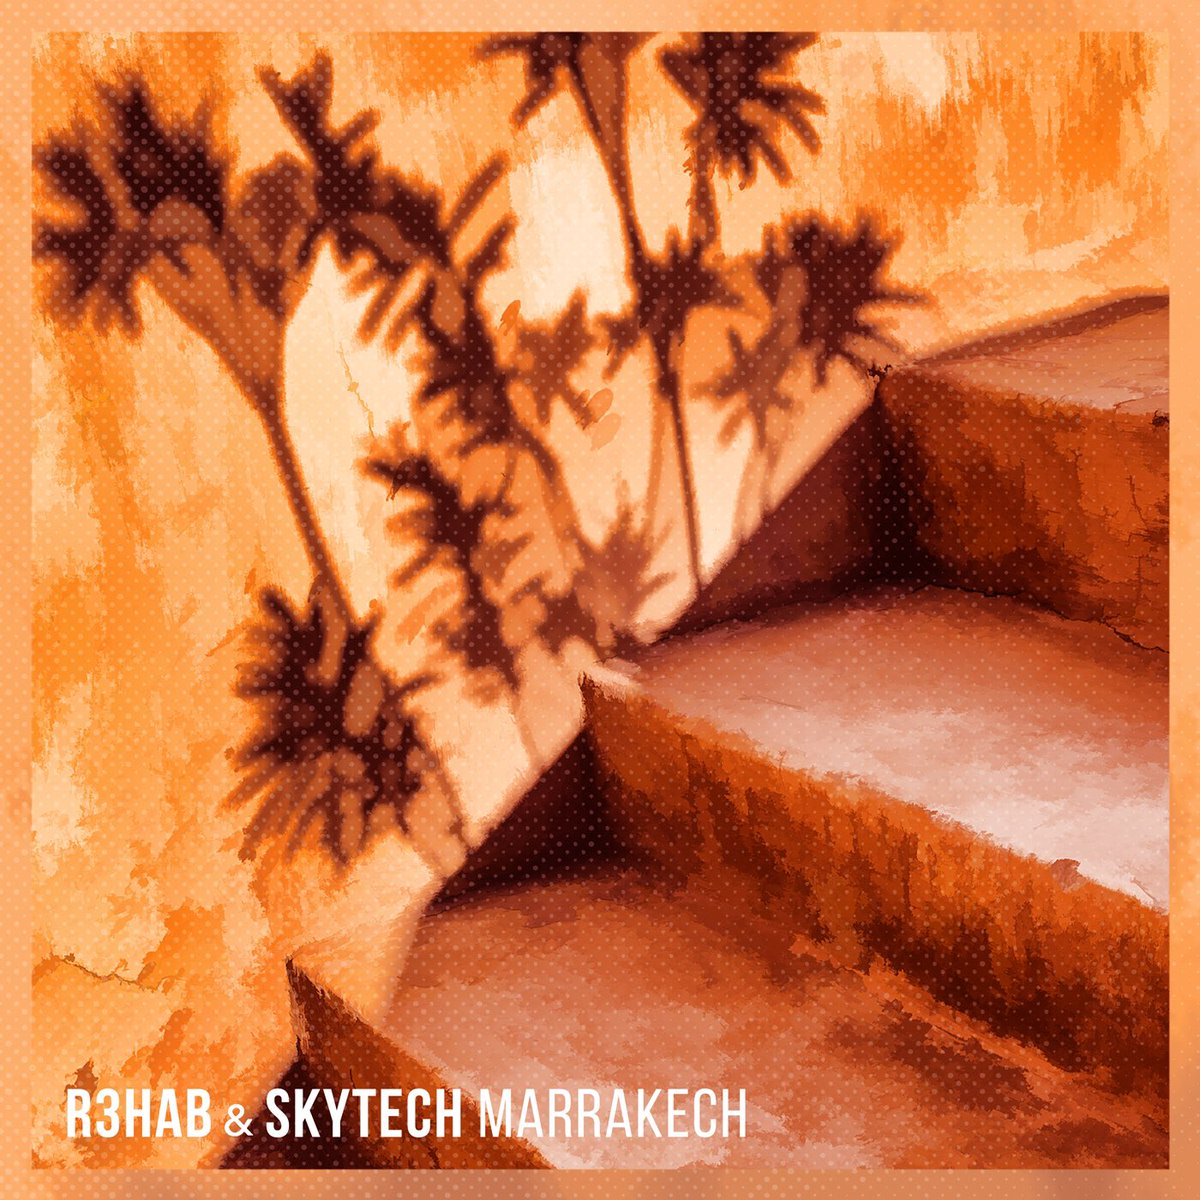 Big shout out to @Spotify & @kramerbpm for putting Marrakech in the #FridayCratediggers and #NewMusicFriday playlist 🙏🏼🙏🏼🎉🎉